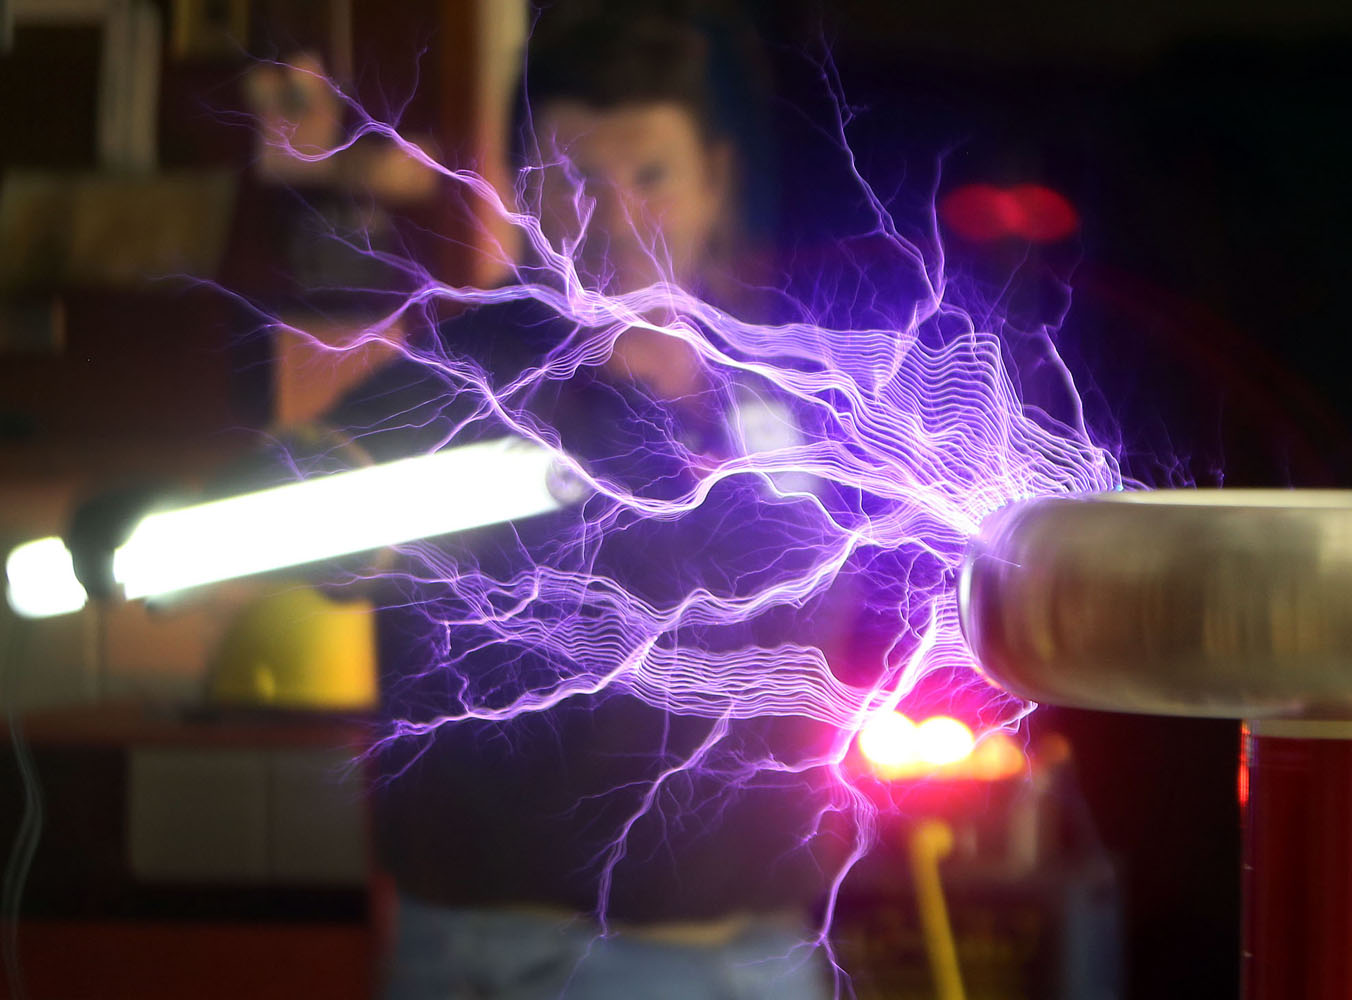 Tesla coil light, Madrid student protest, Milan Fashion Week | Feb. 26